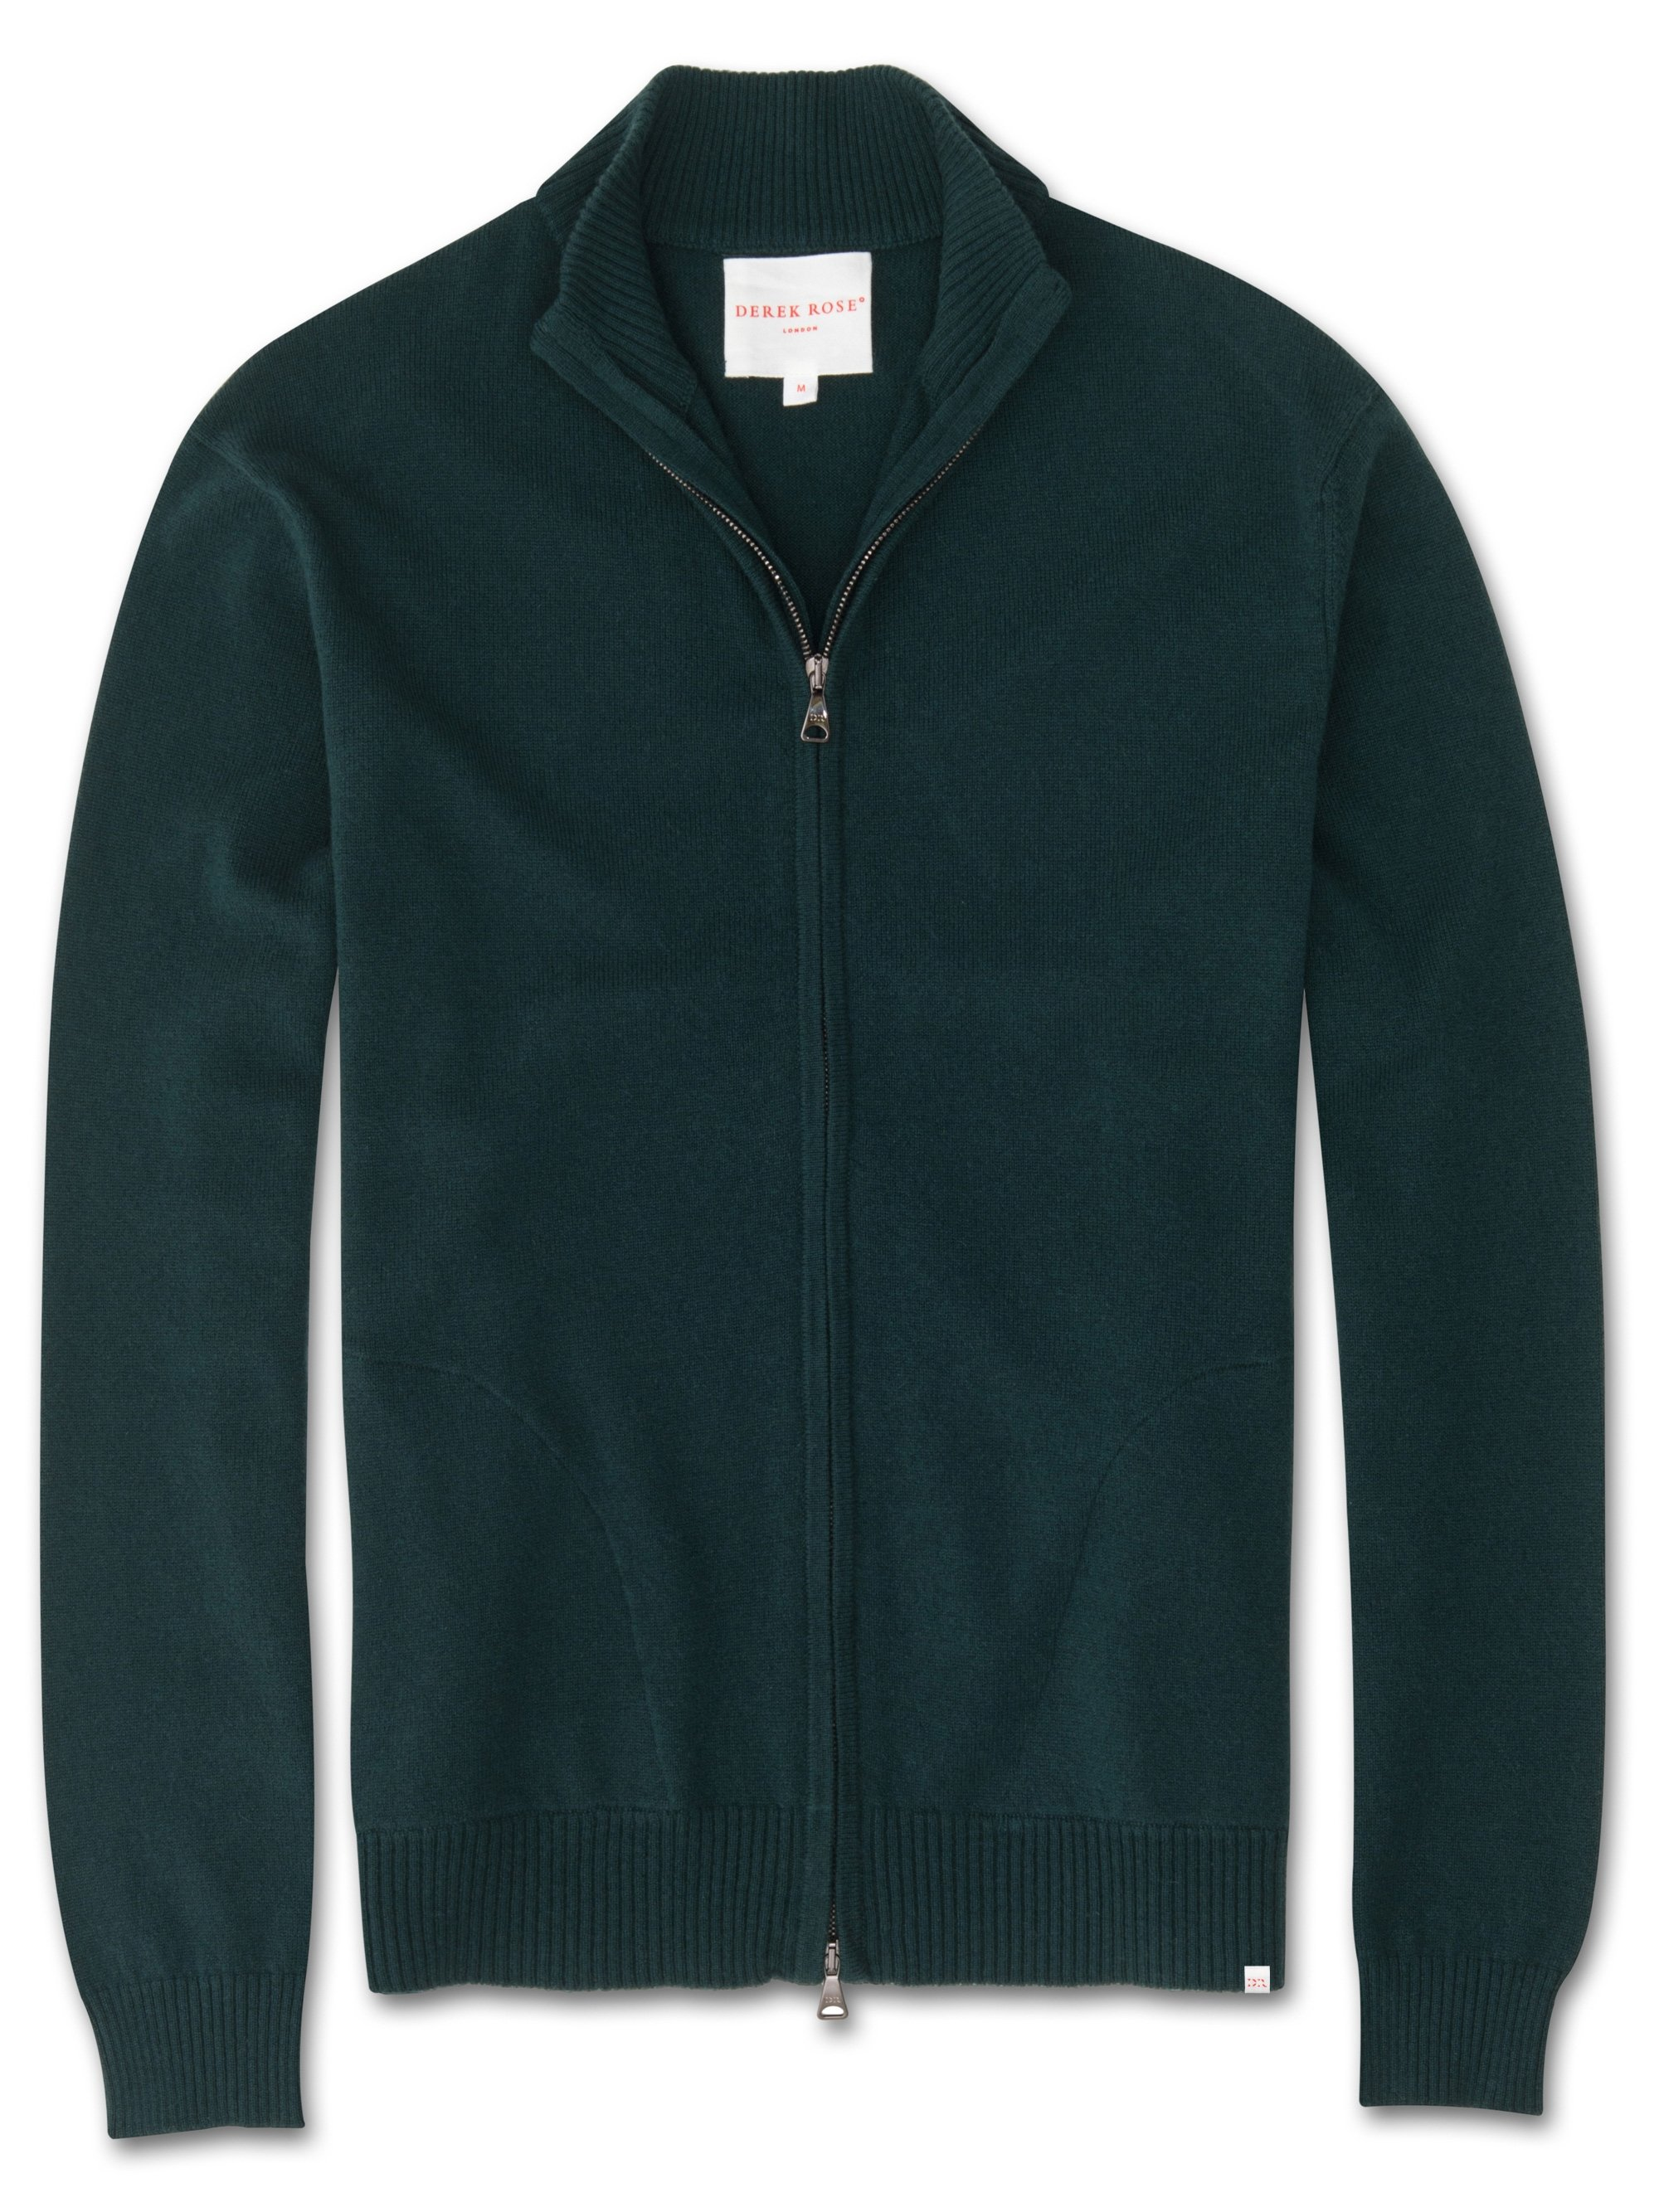 Men's Cashmere Zip-Up Top Finley Pure Cashmere Green